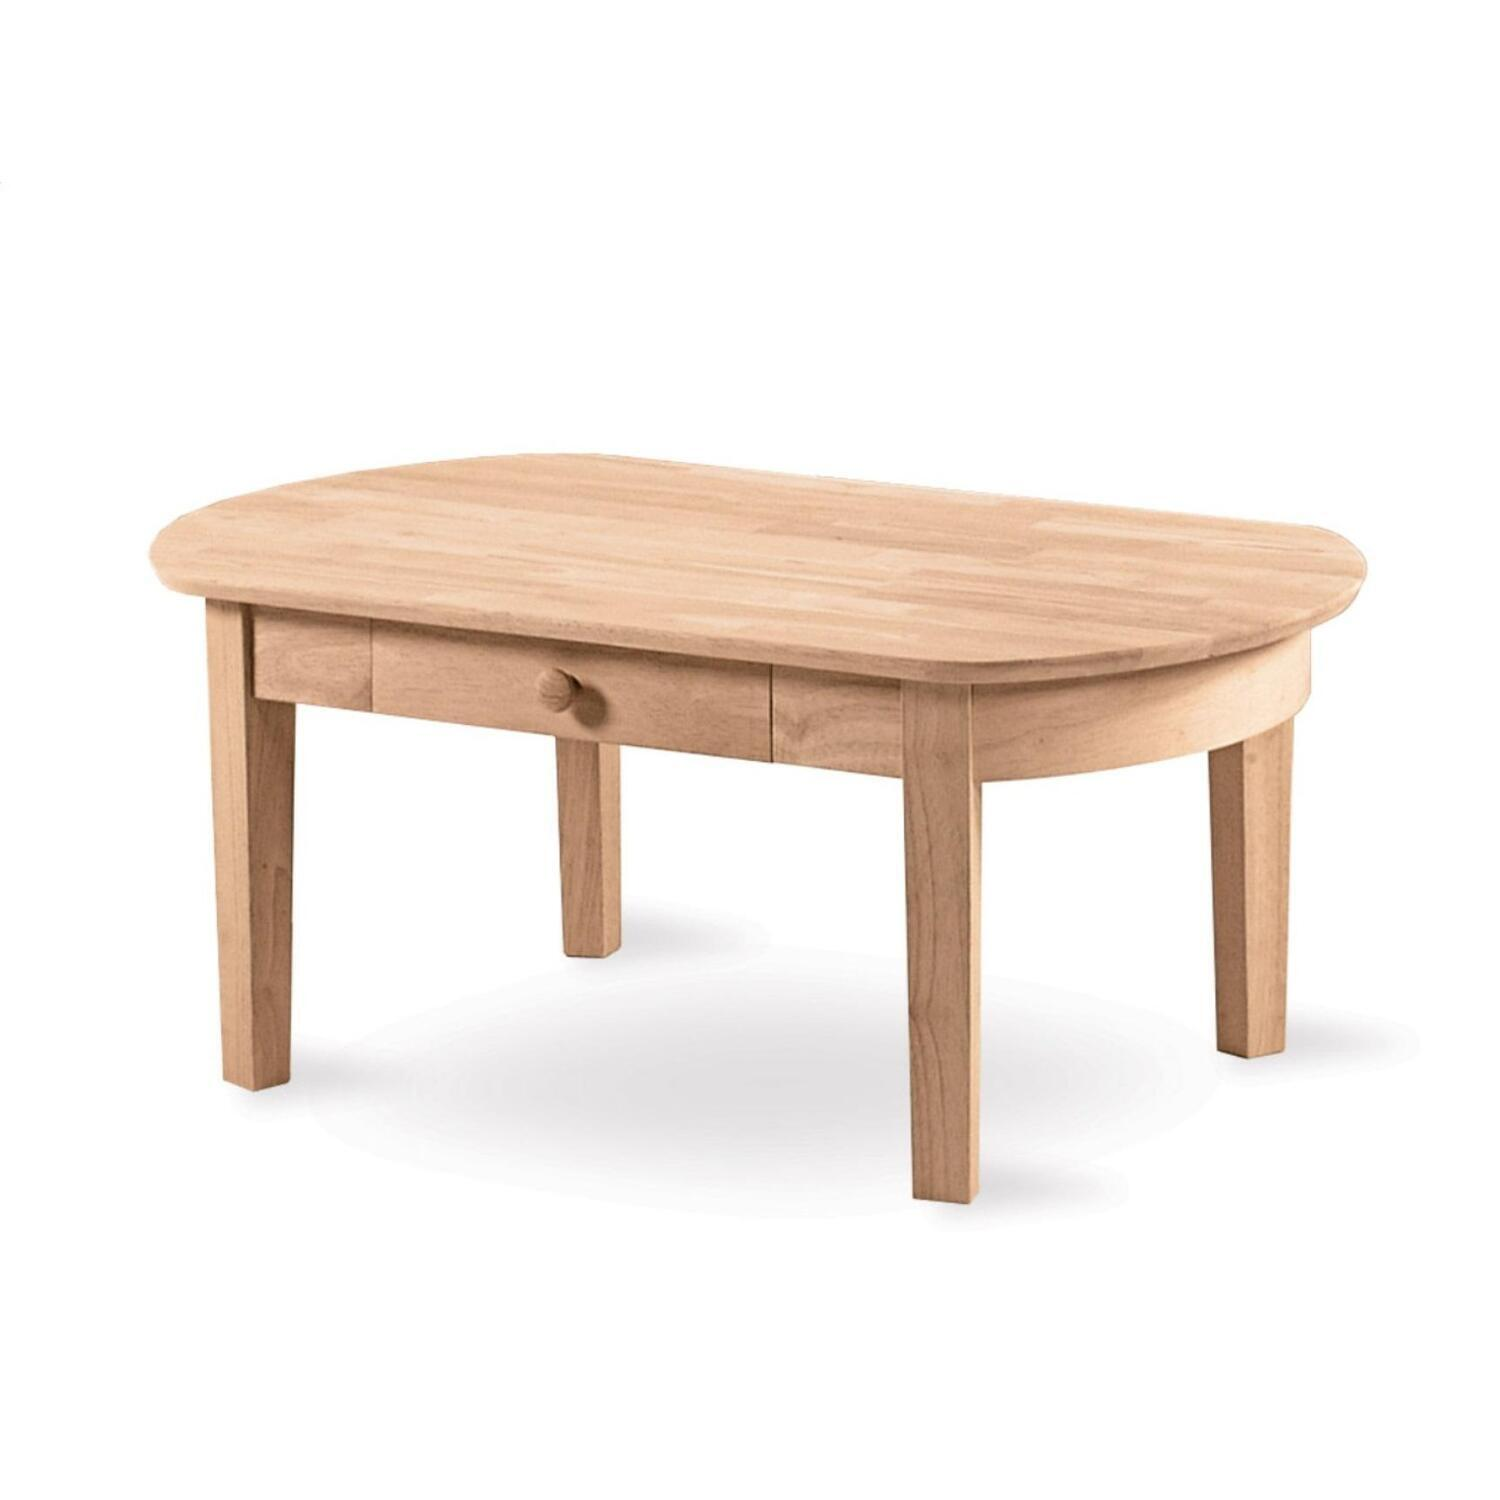 International Concepts Philips Oval Coffee Table By OJ Commerce OT 5C